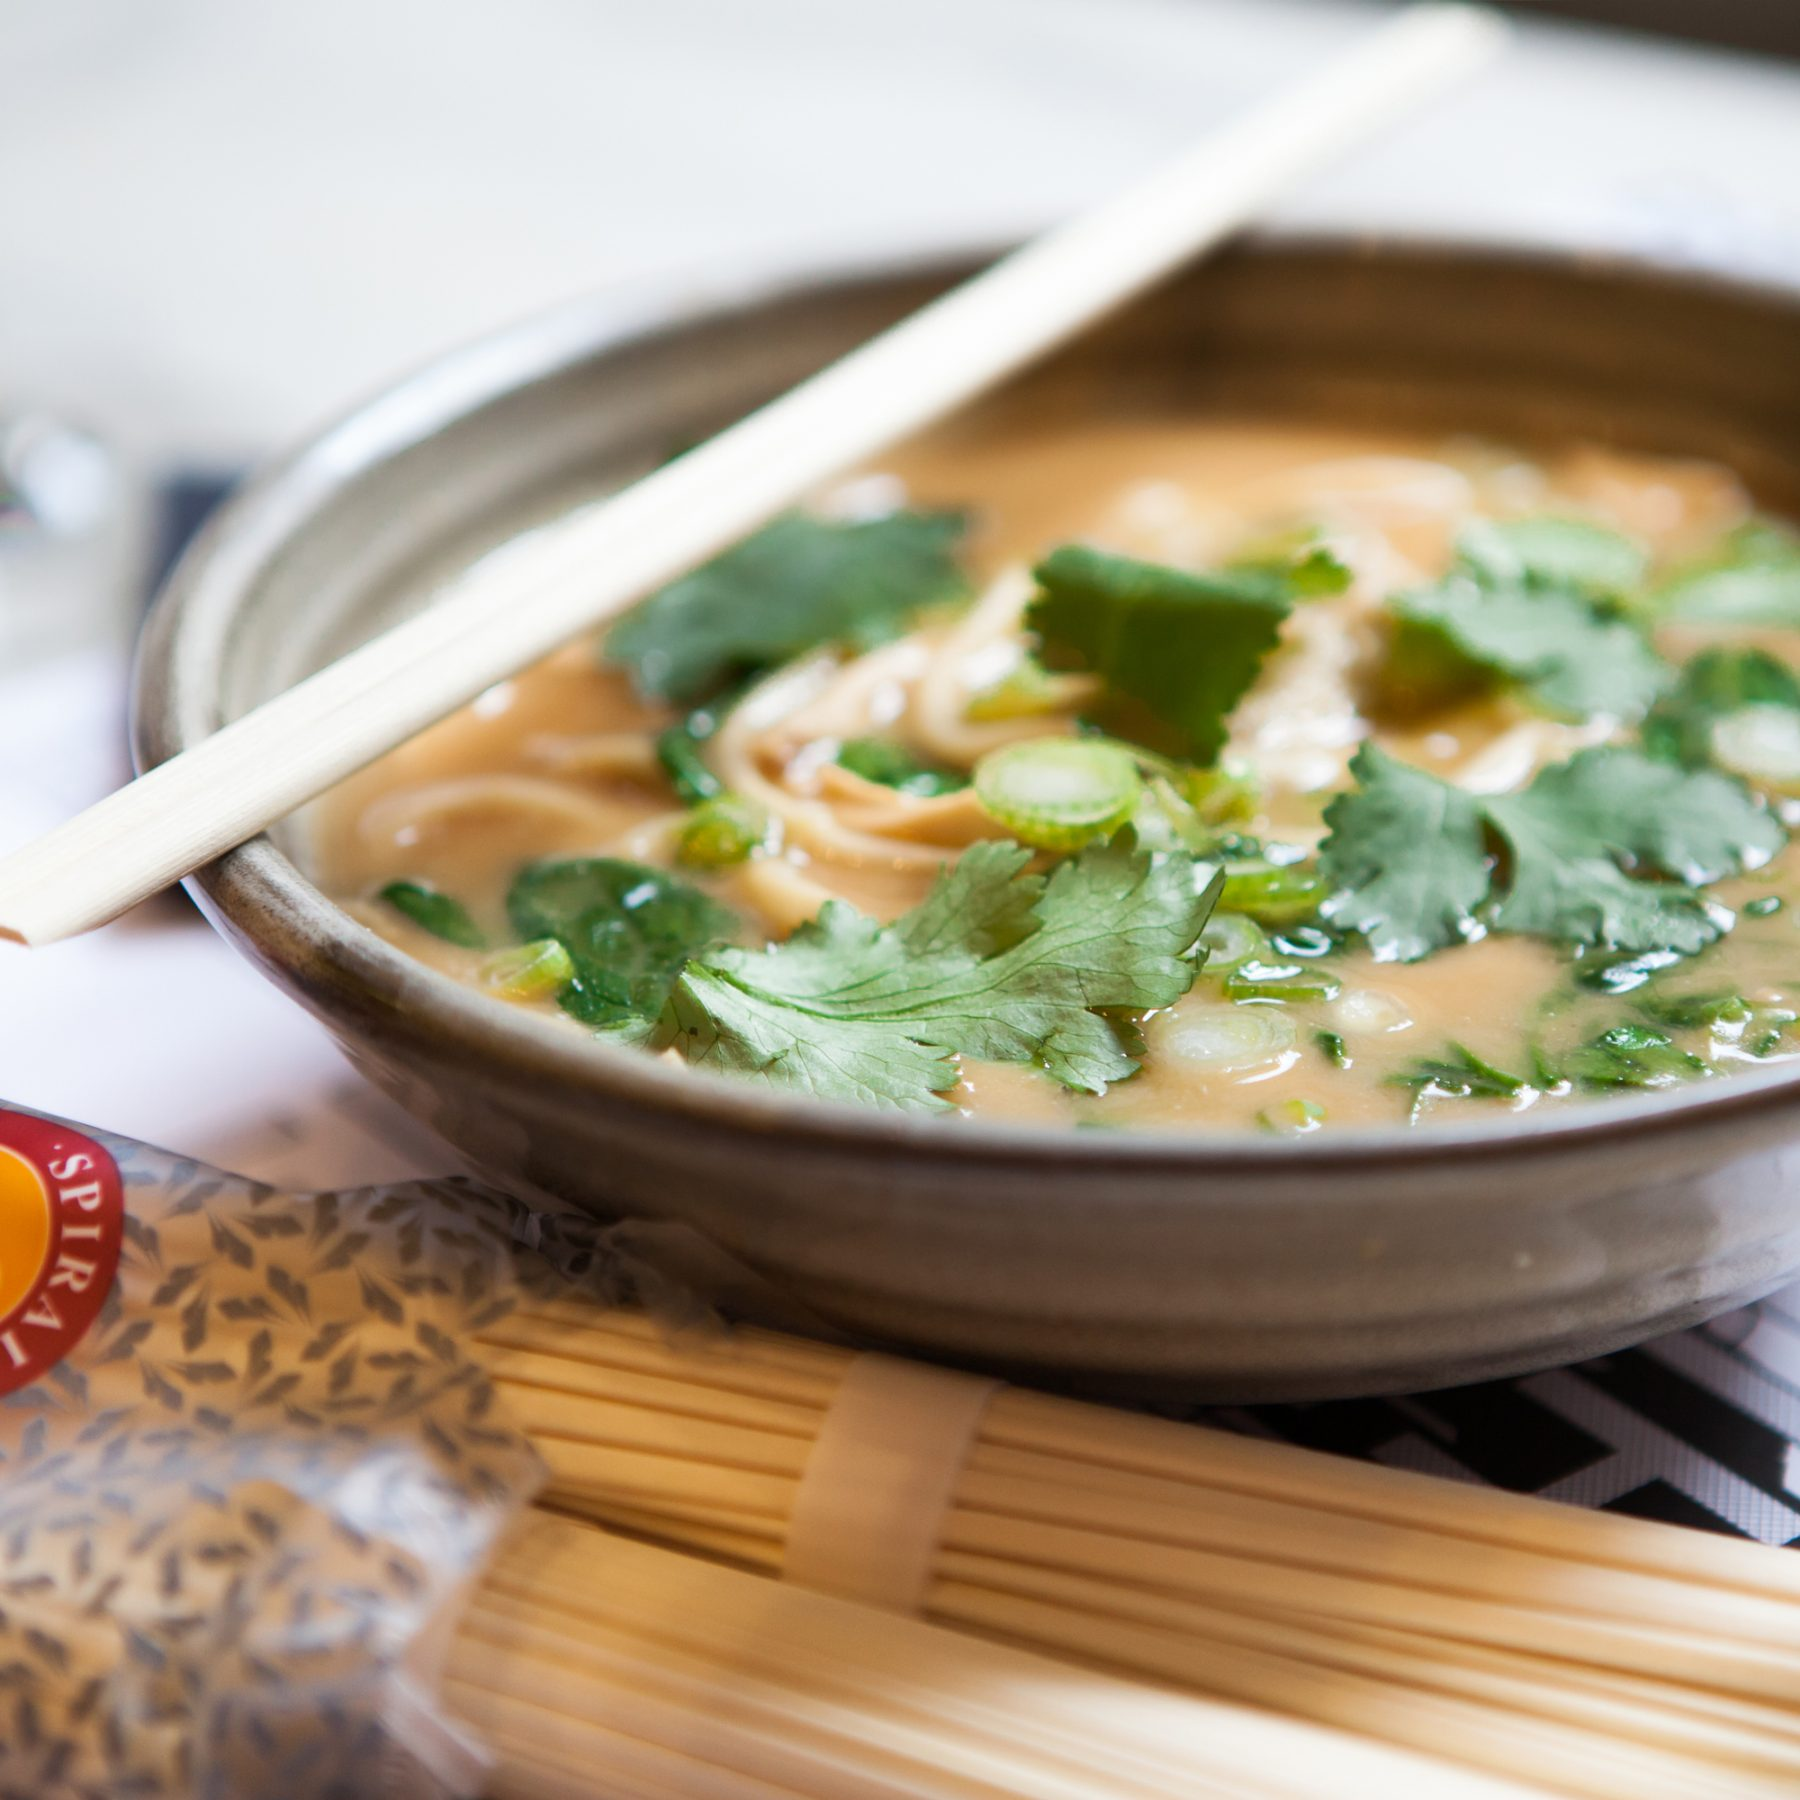 Roast Cauliflower Miso Soup with Shredded Roast Chicken & Udon Noodles